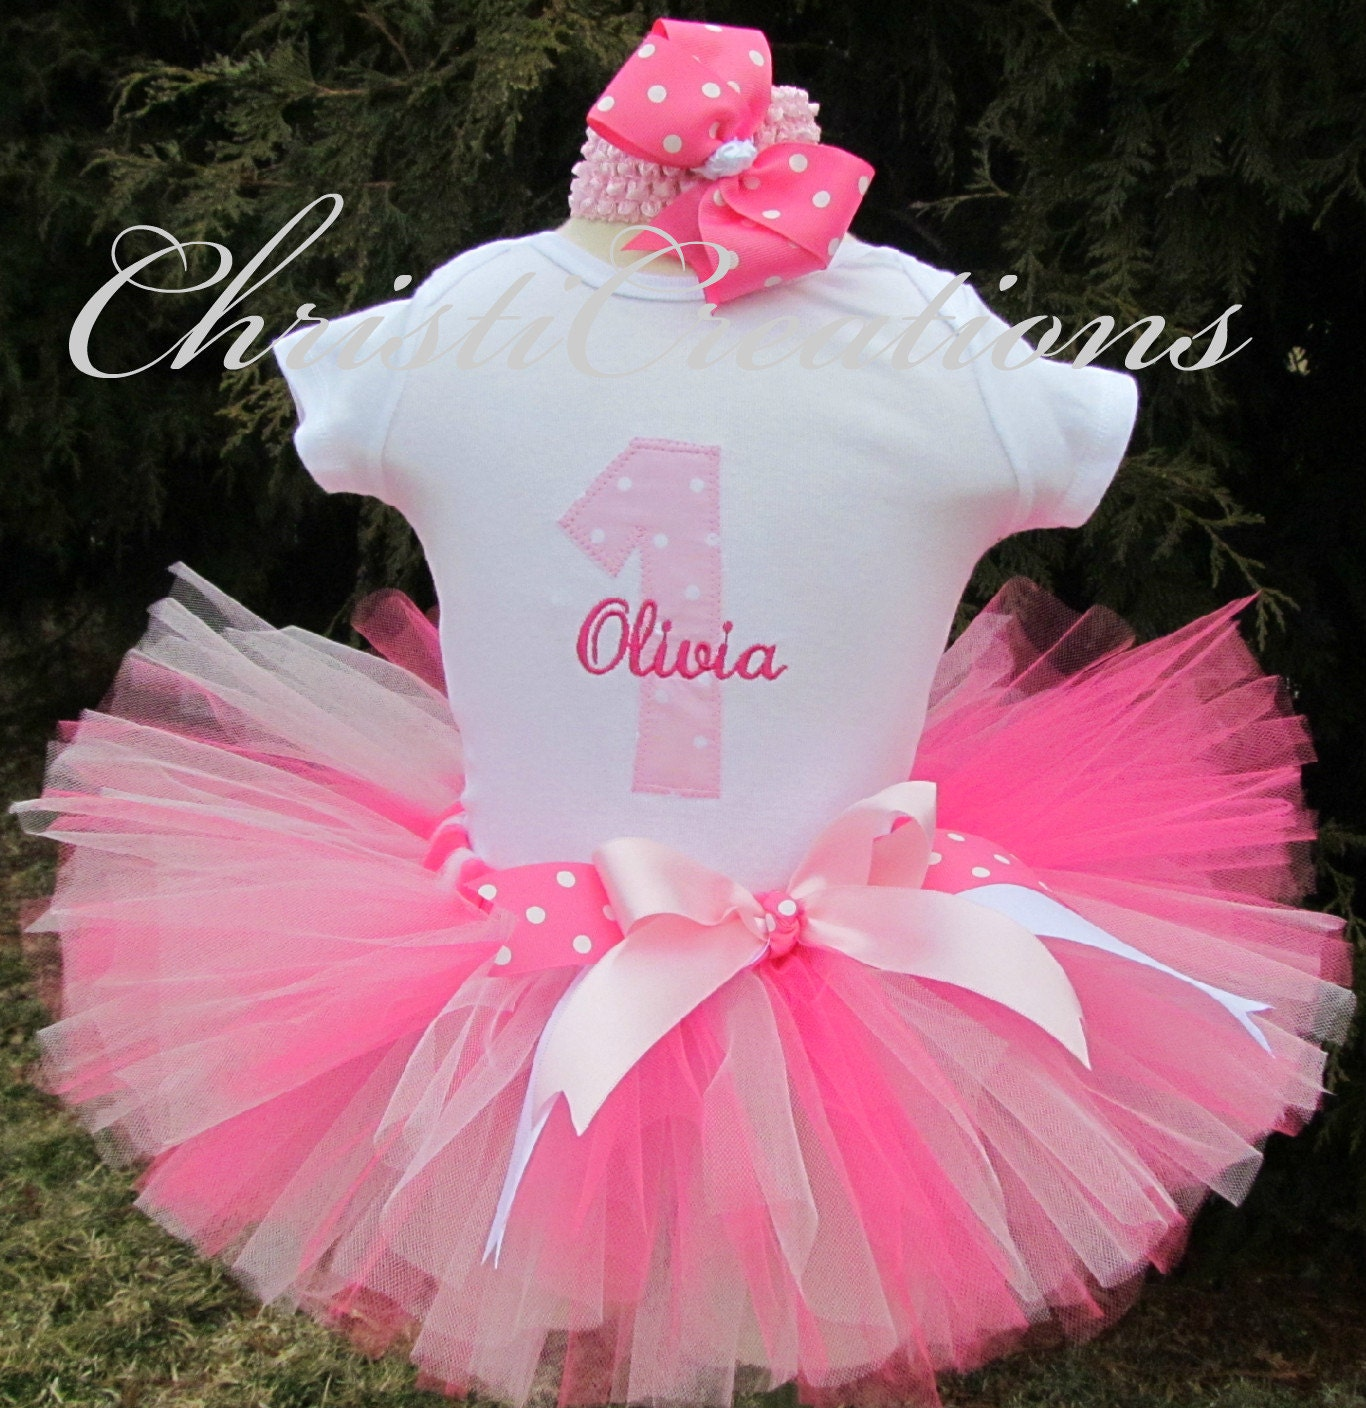 Birthday Party Outfit: Baby Girl Pink Tutu First Birthay Tutu Outfit By